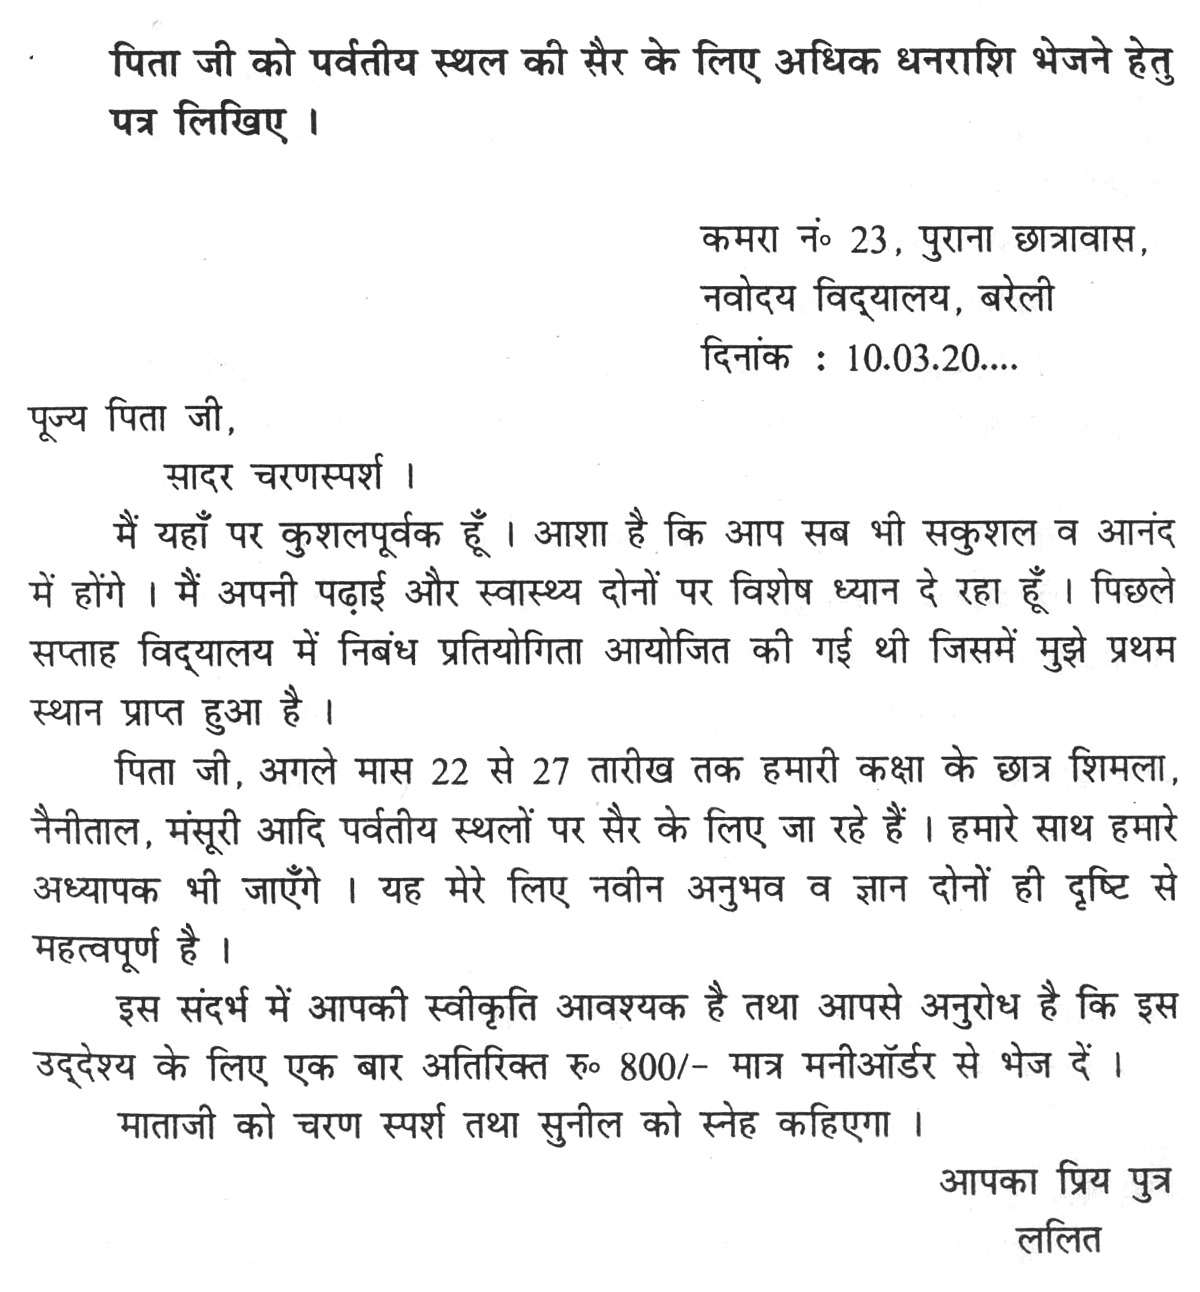 015 My Father Essay Writing On Pet Dog For Class 89 T Is Role Model In Marathi English Hero Simple Language Unusual Parents Superhero Full